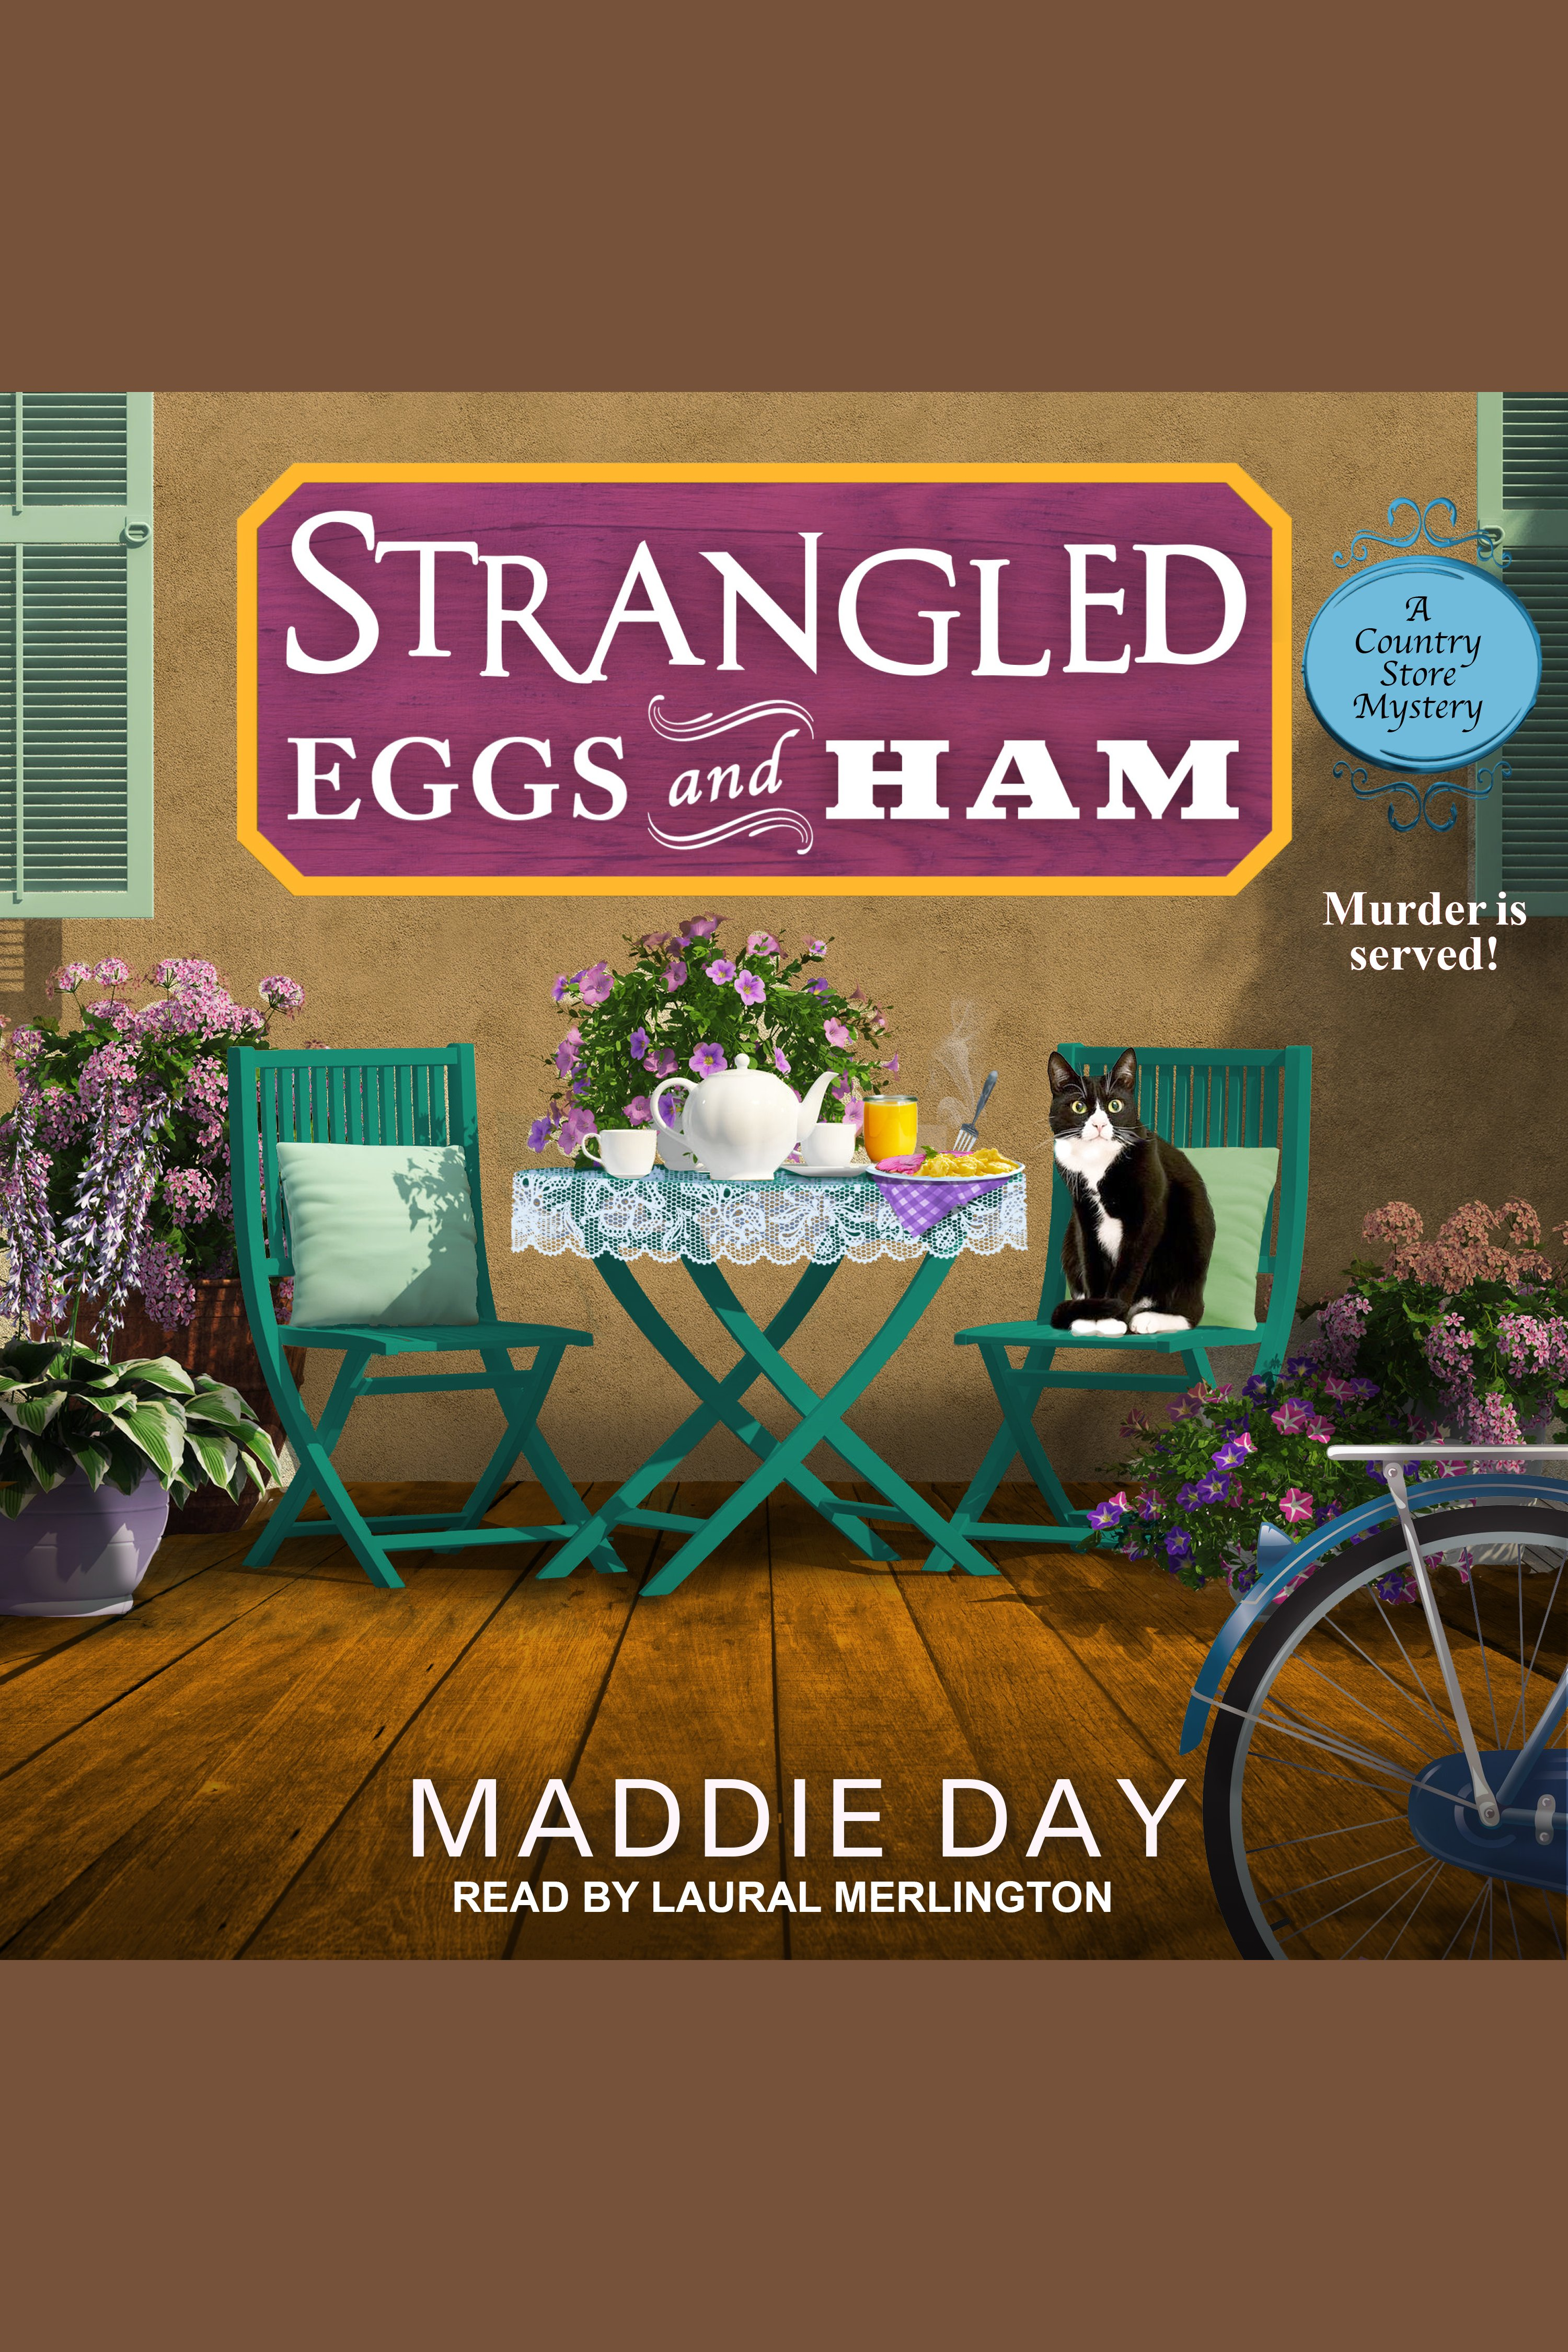 Strangled Eggs and Ham A Country Store Mystery, Murder is served!